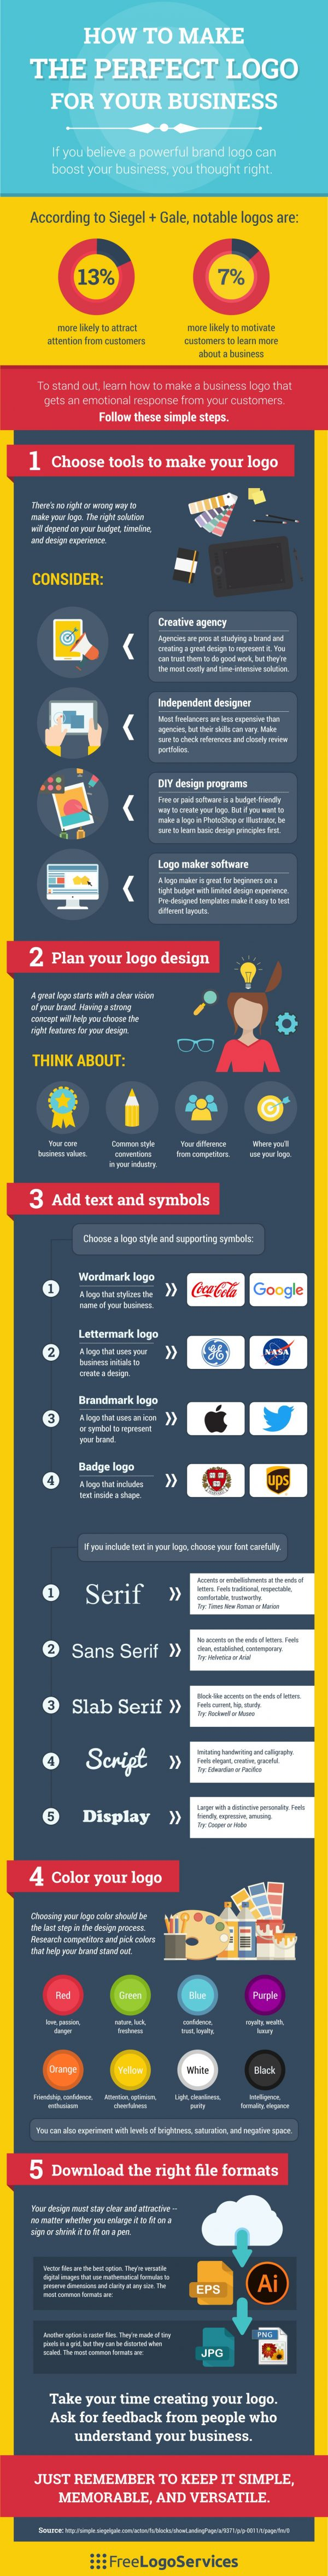 Top 5 Steps To Make A Logo For Your Business